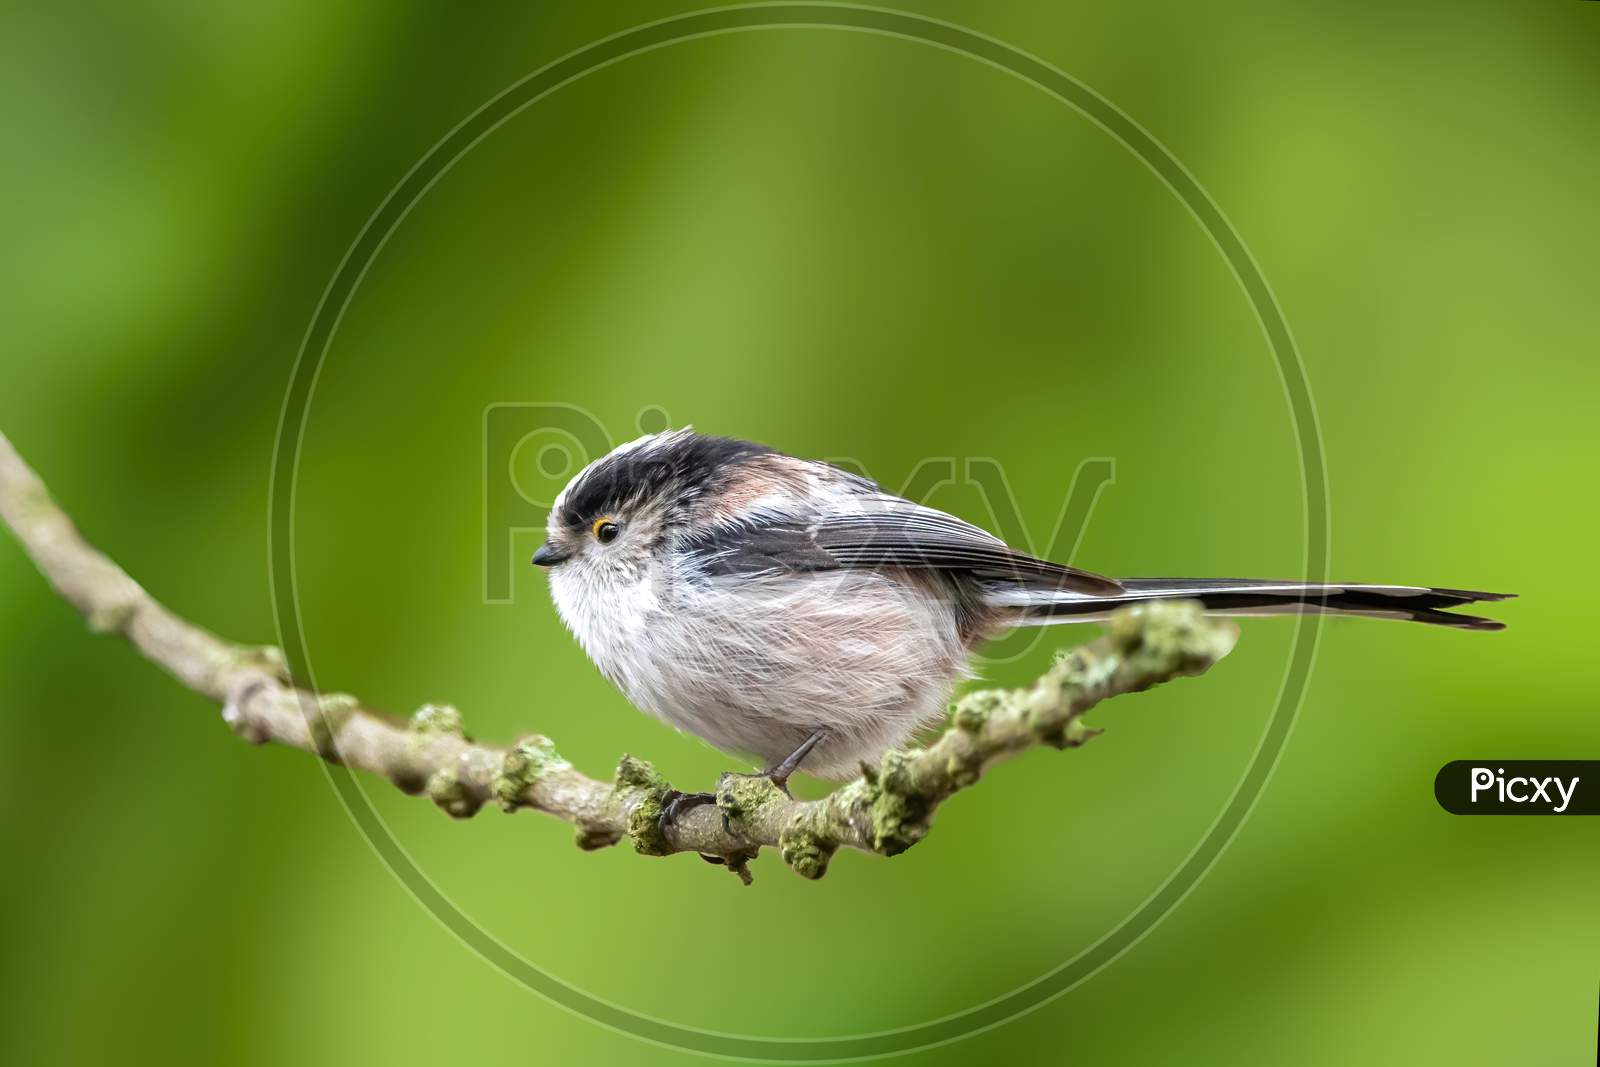 A long-tailed tit sitting on a branch of a tree at the Mönchbruch pond in a natural reserve in Hesse Germany. Beautiful blurred green background.